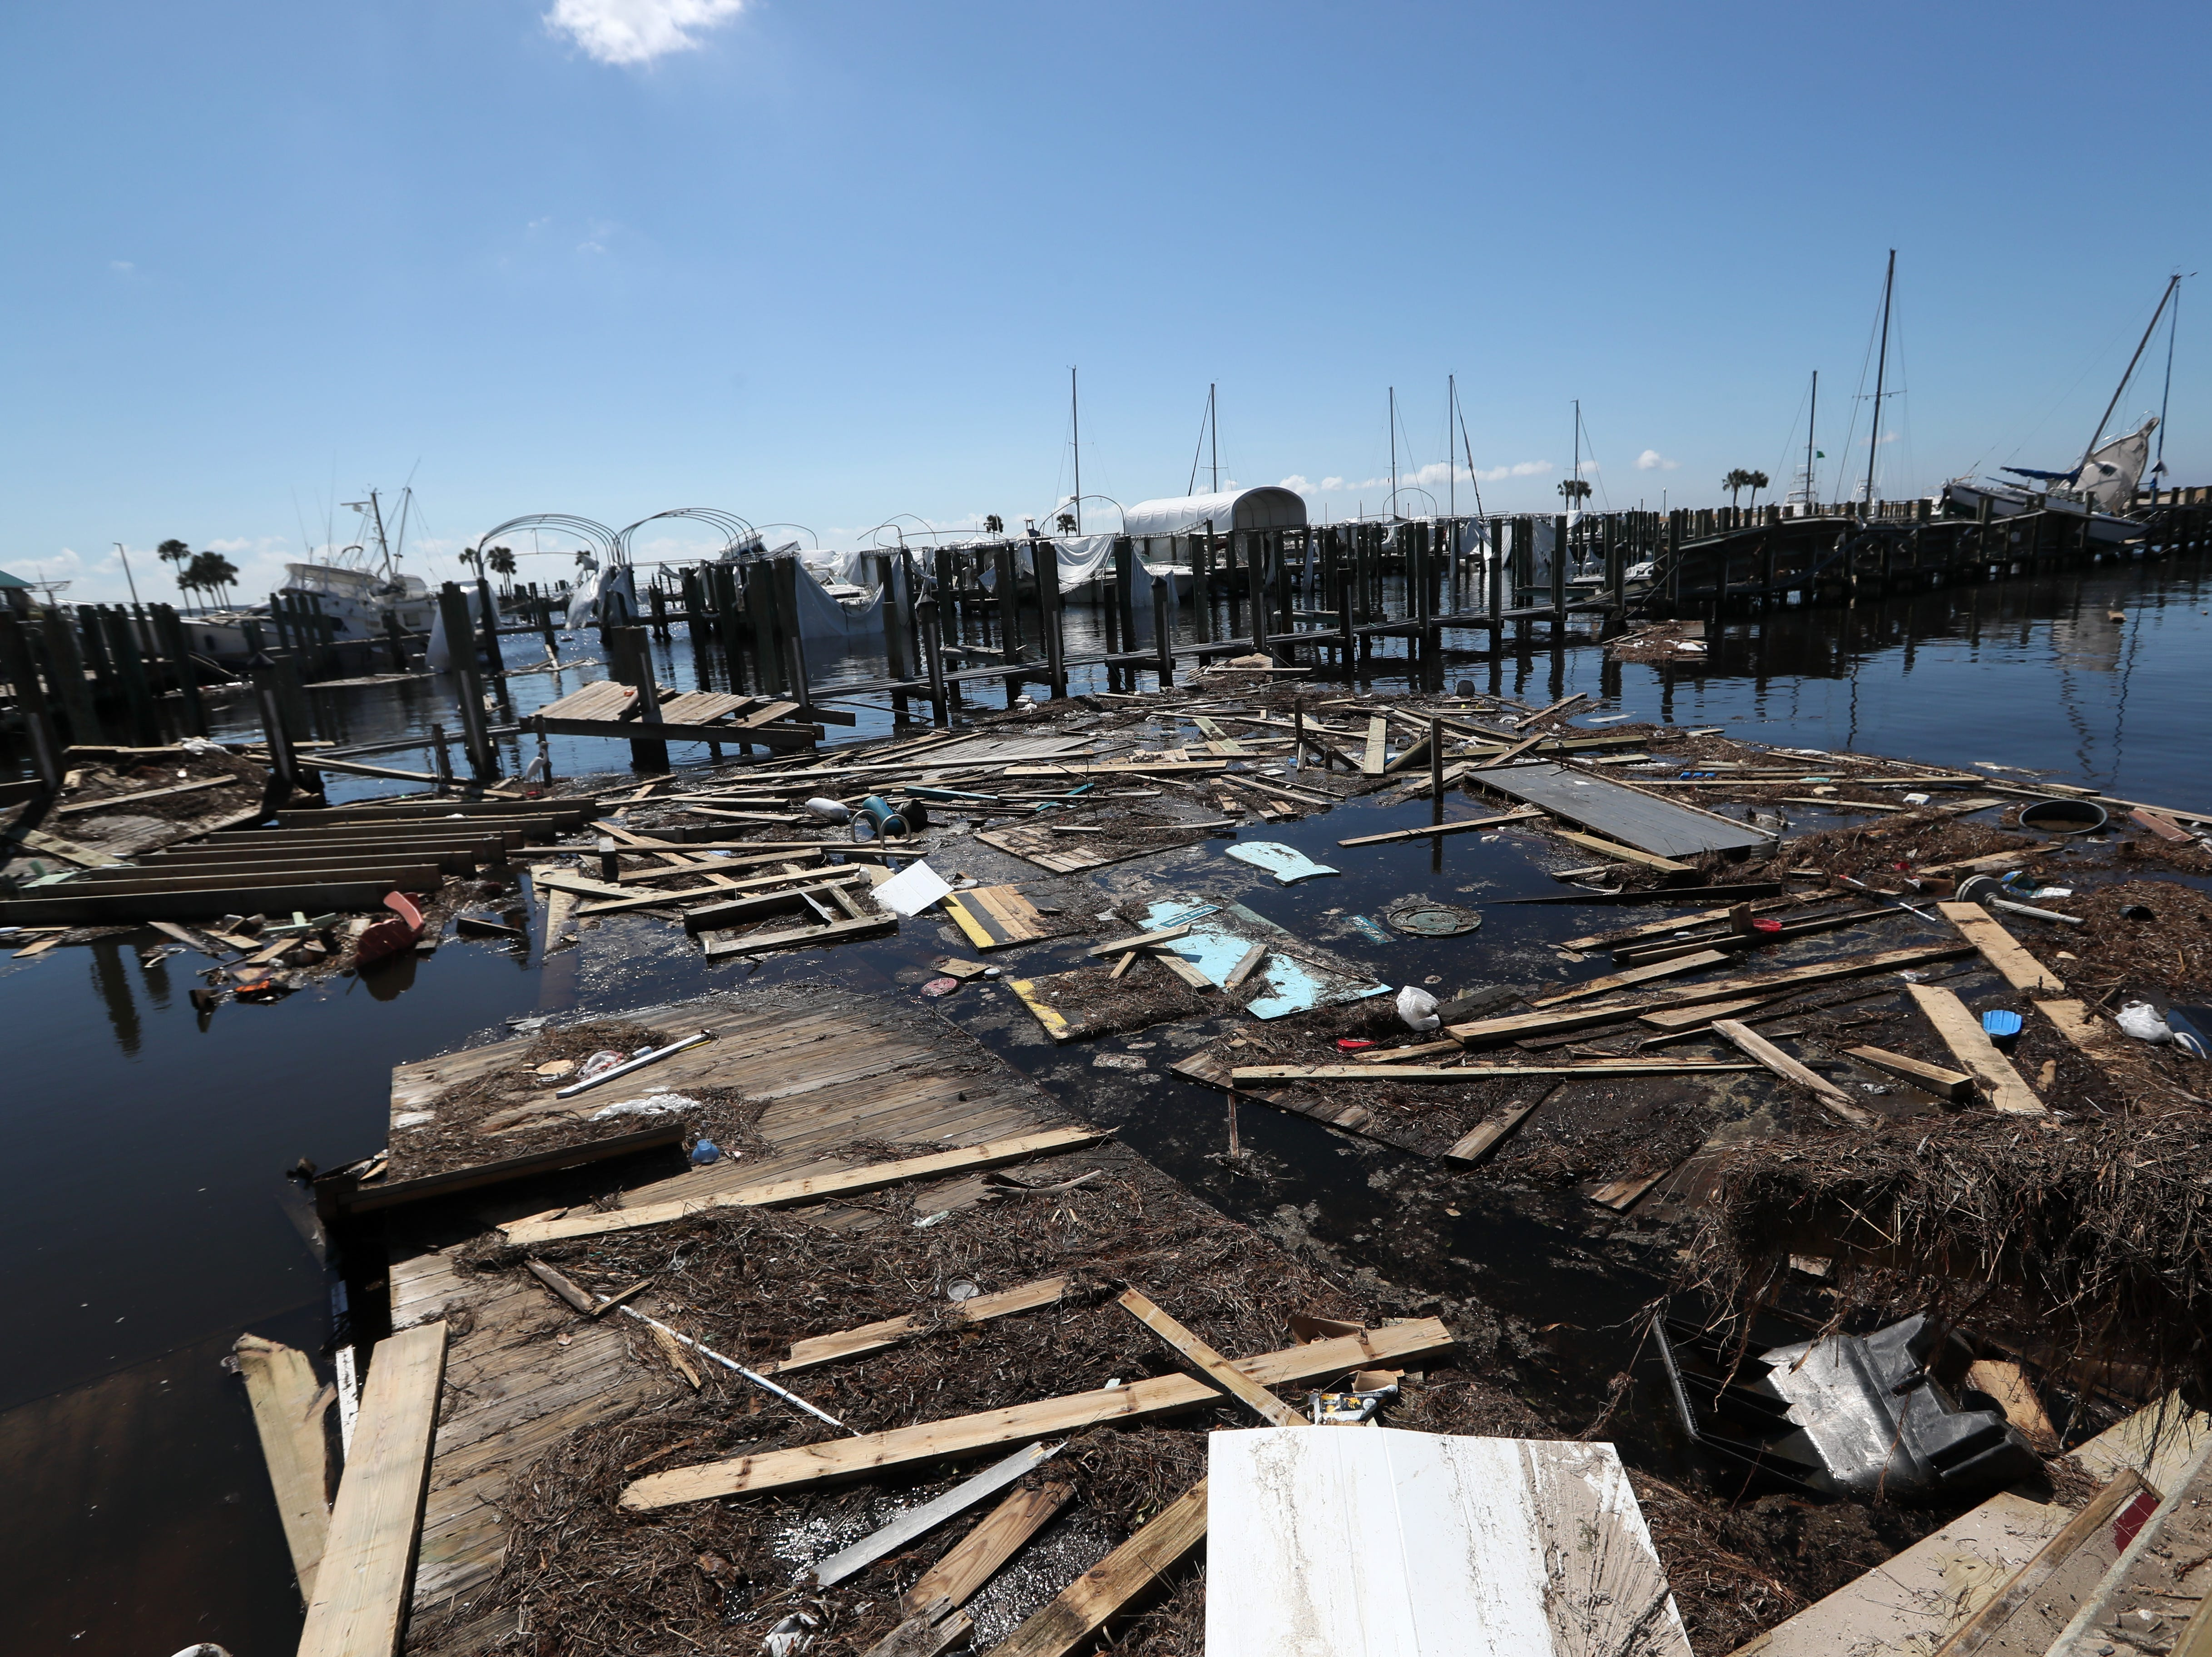 Debris floats along the water Tuesday in the Port St. Joe marina after Hurricane Michael blasted the region.